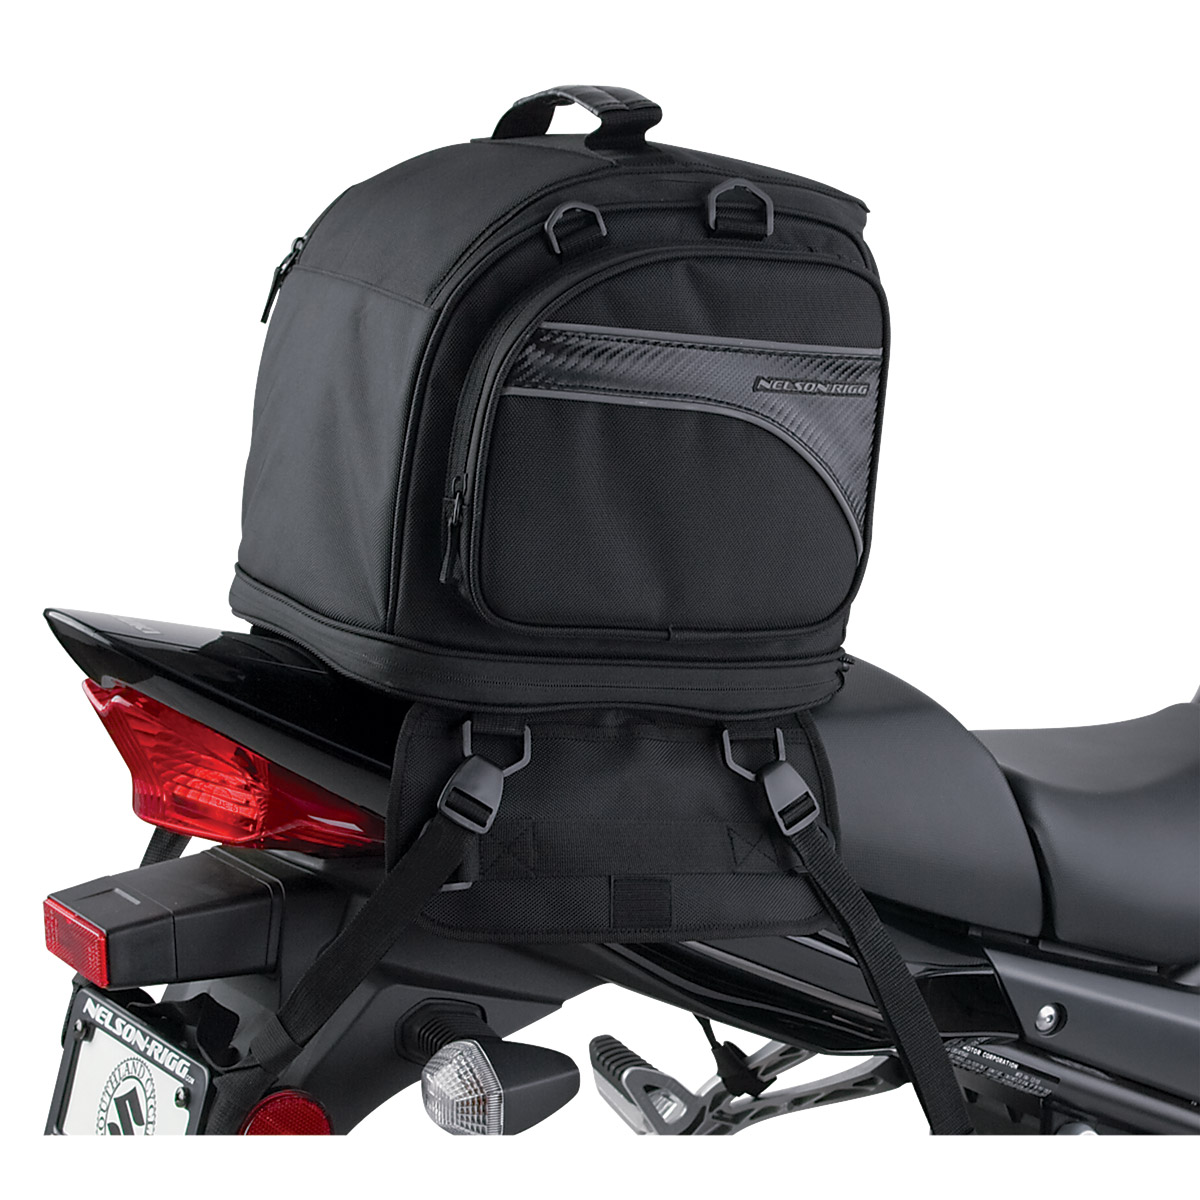 Nelson-Rigg CL-1070 Touring Expandable Tail Pack